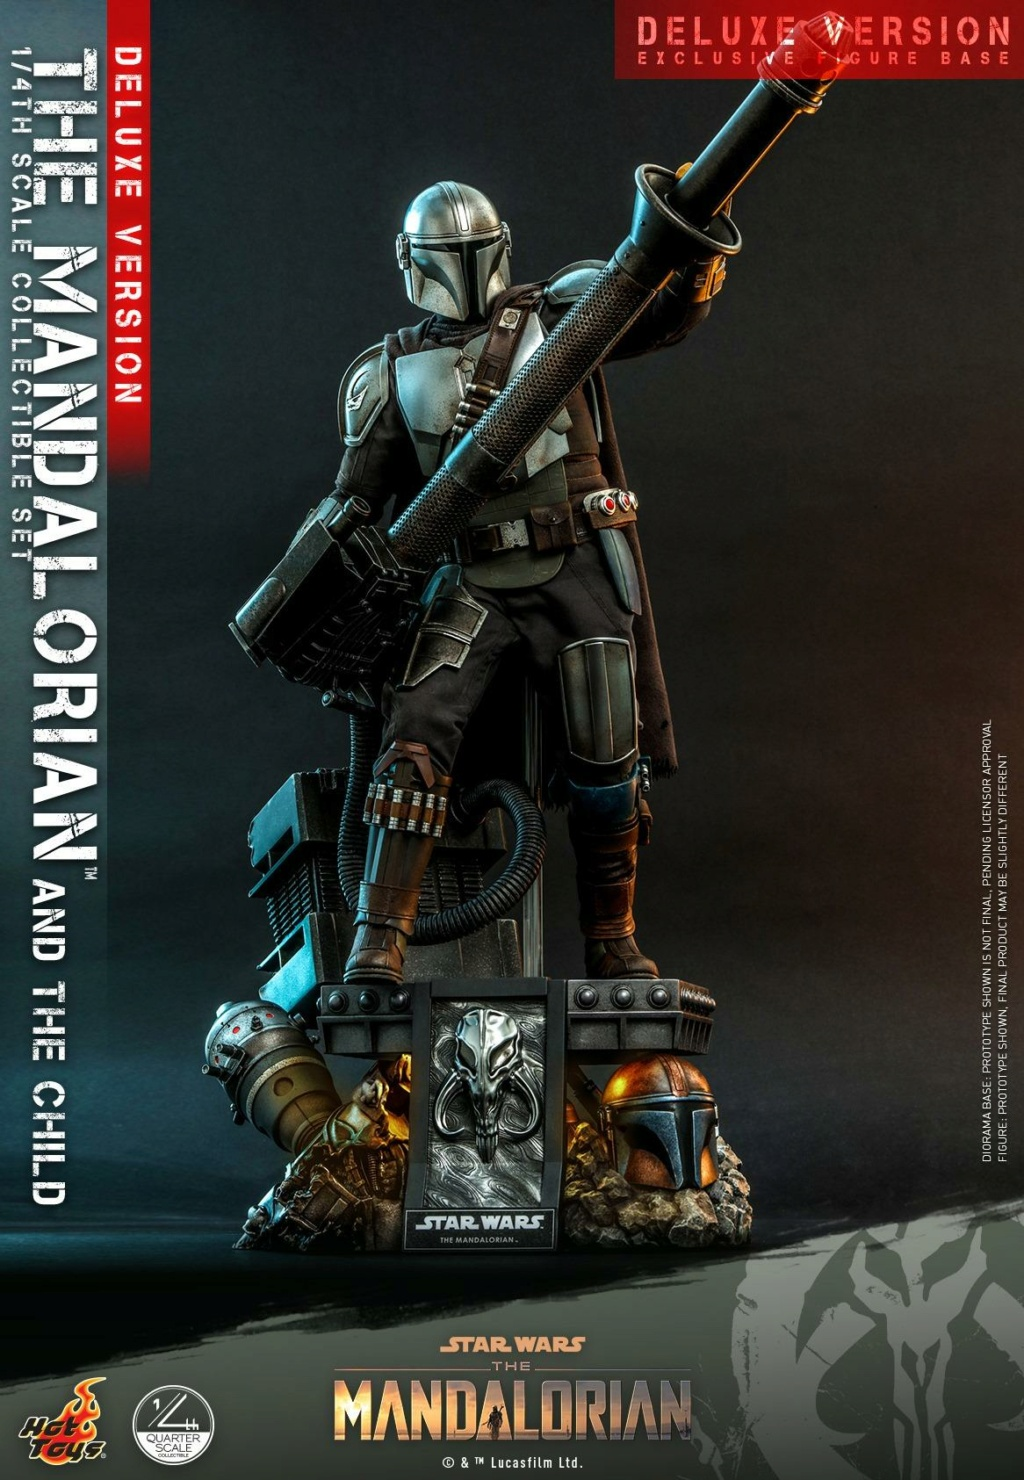 The Mandalorian & The Child Set (Deluxe) 1/4th - Hot Toys 1128